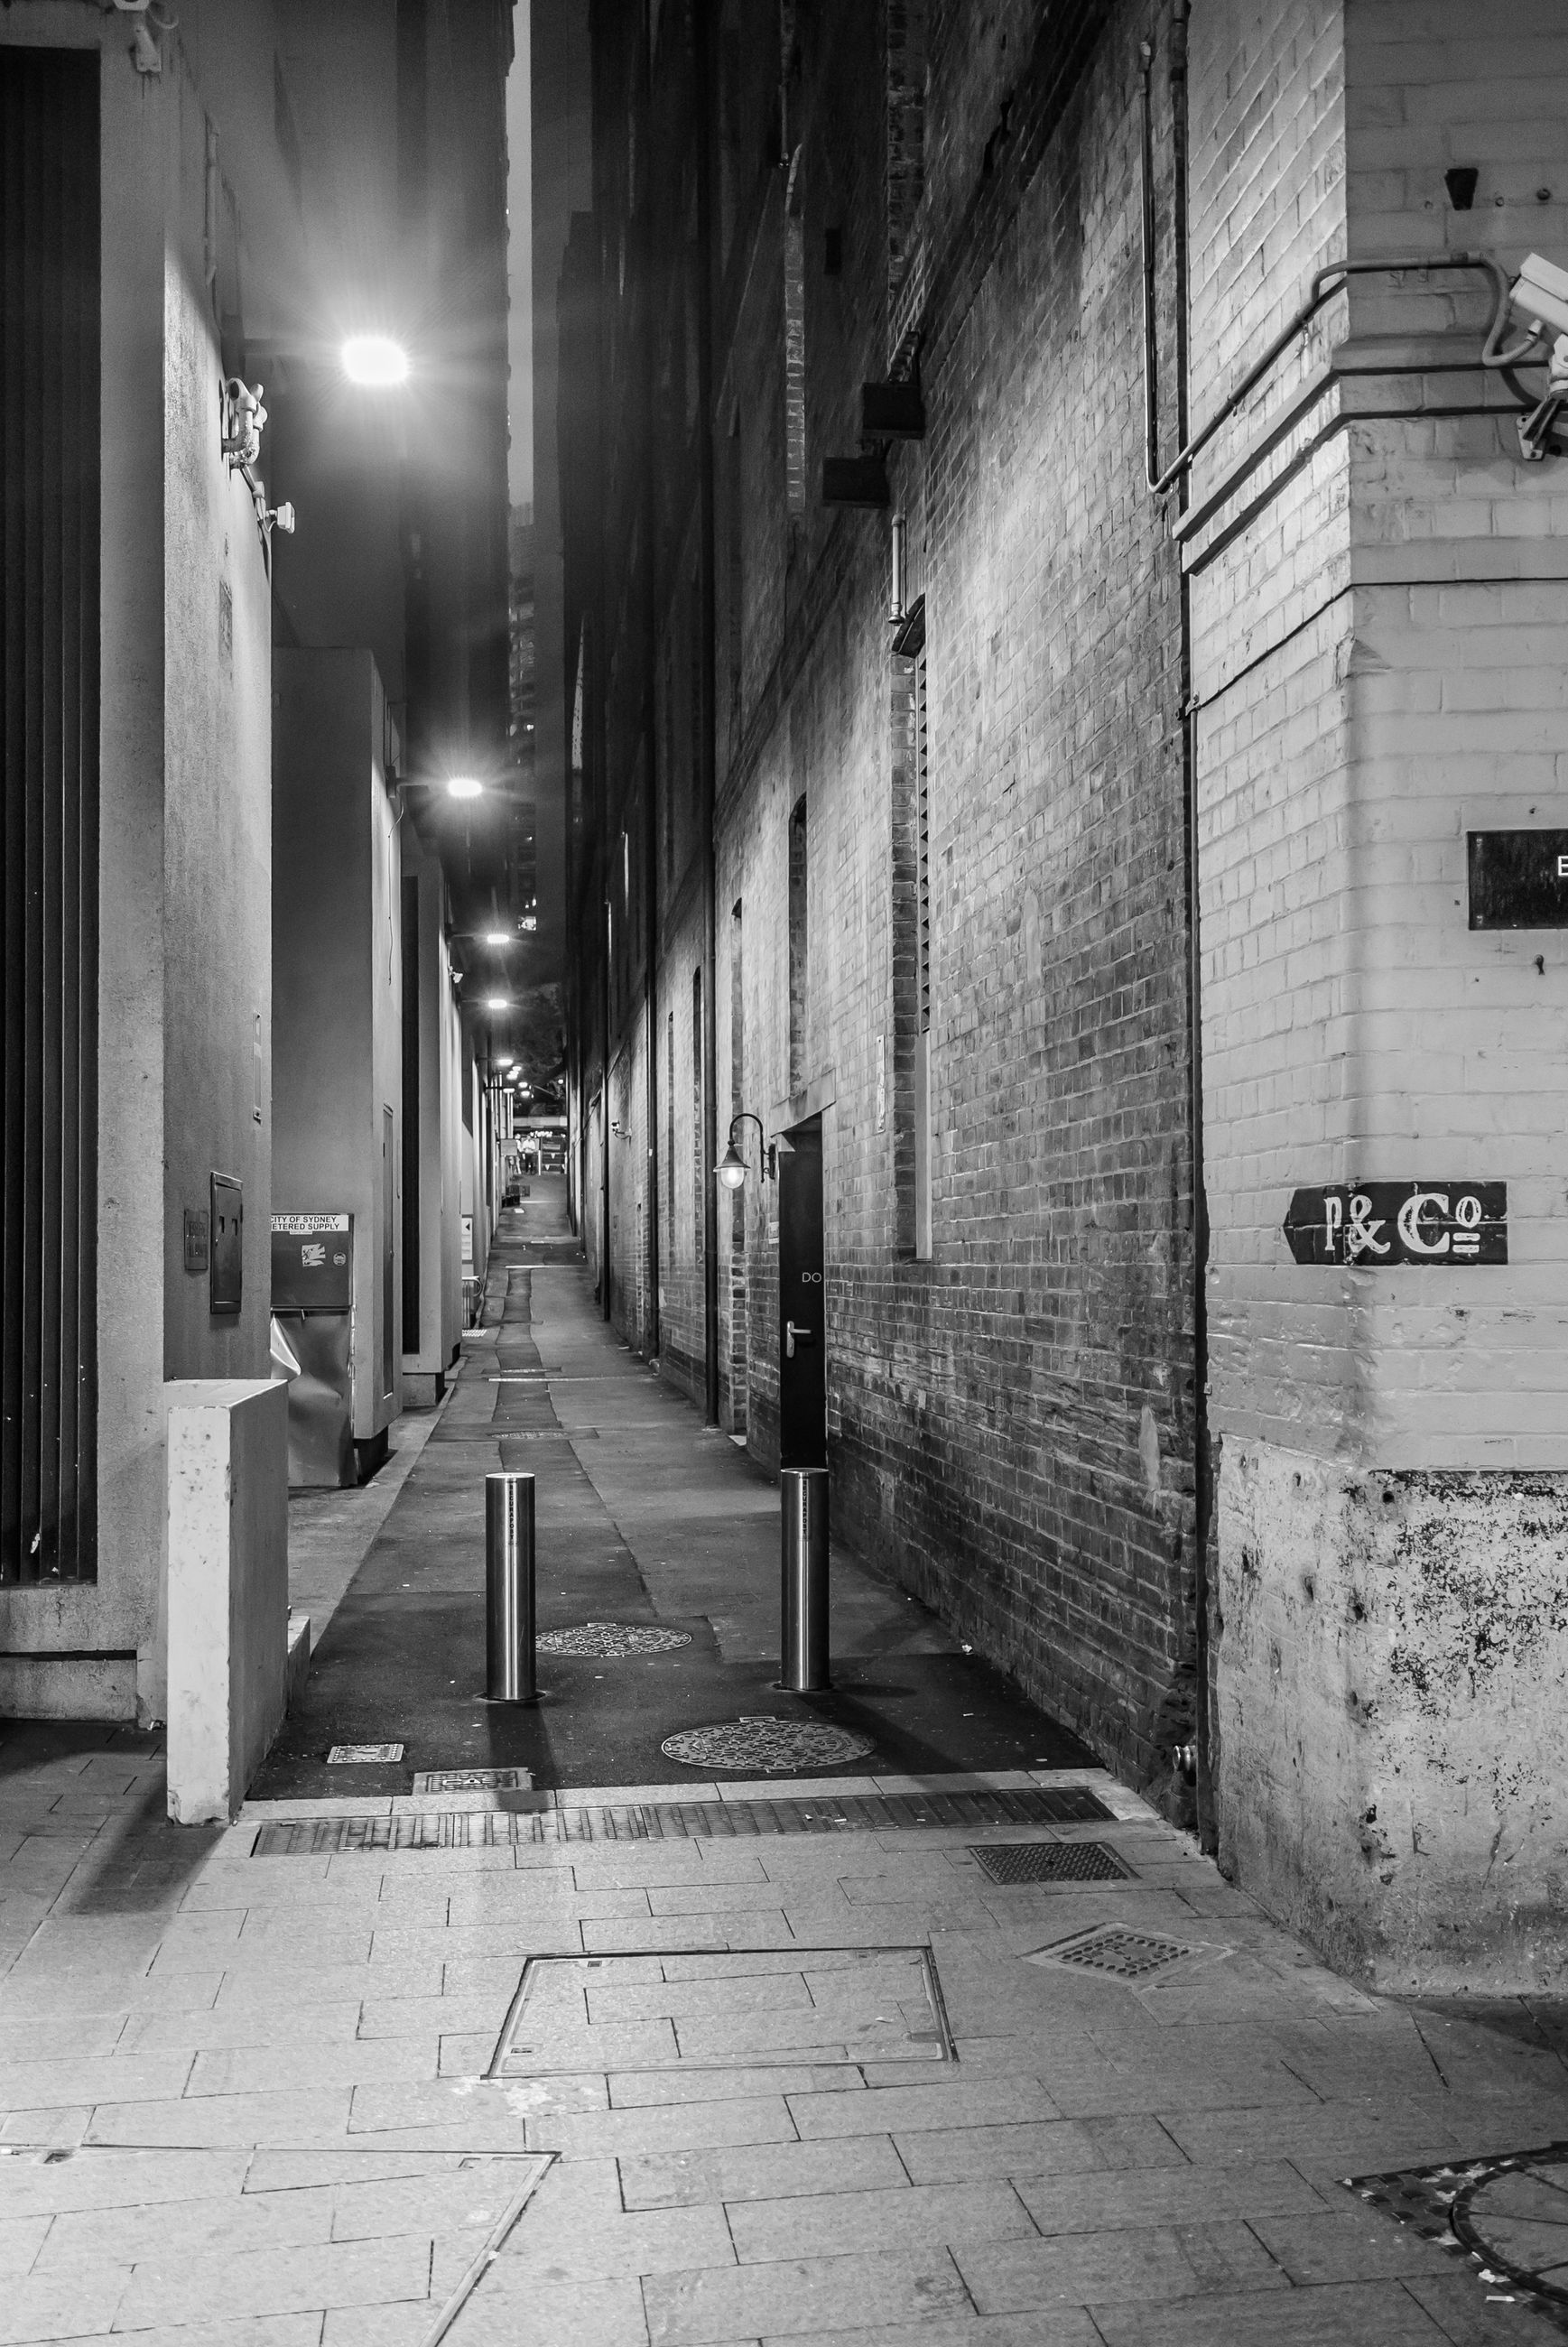 EMPTY WALKWAY IN CITY AT NIGHT